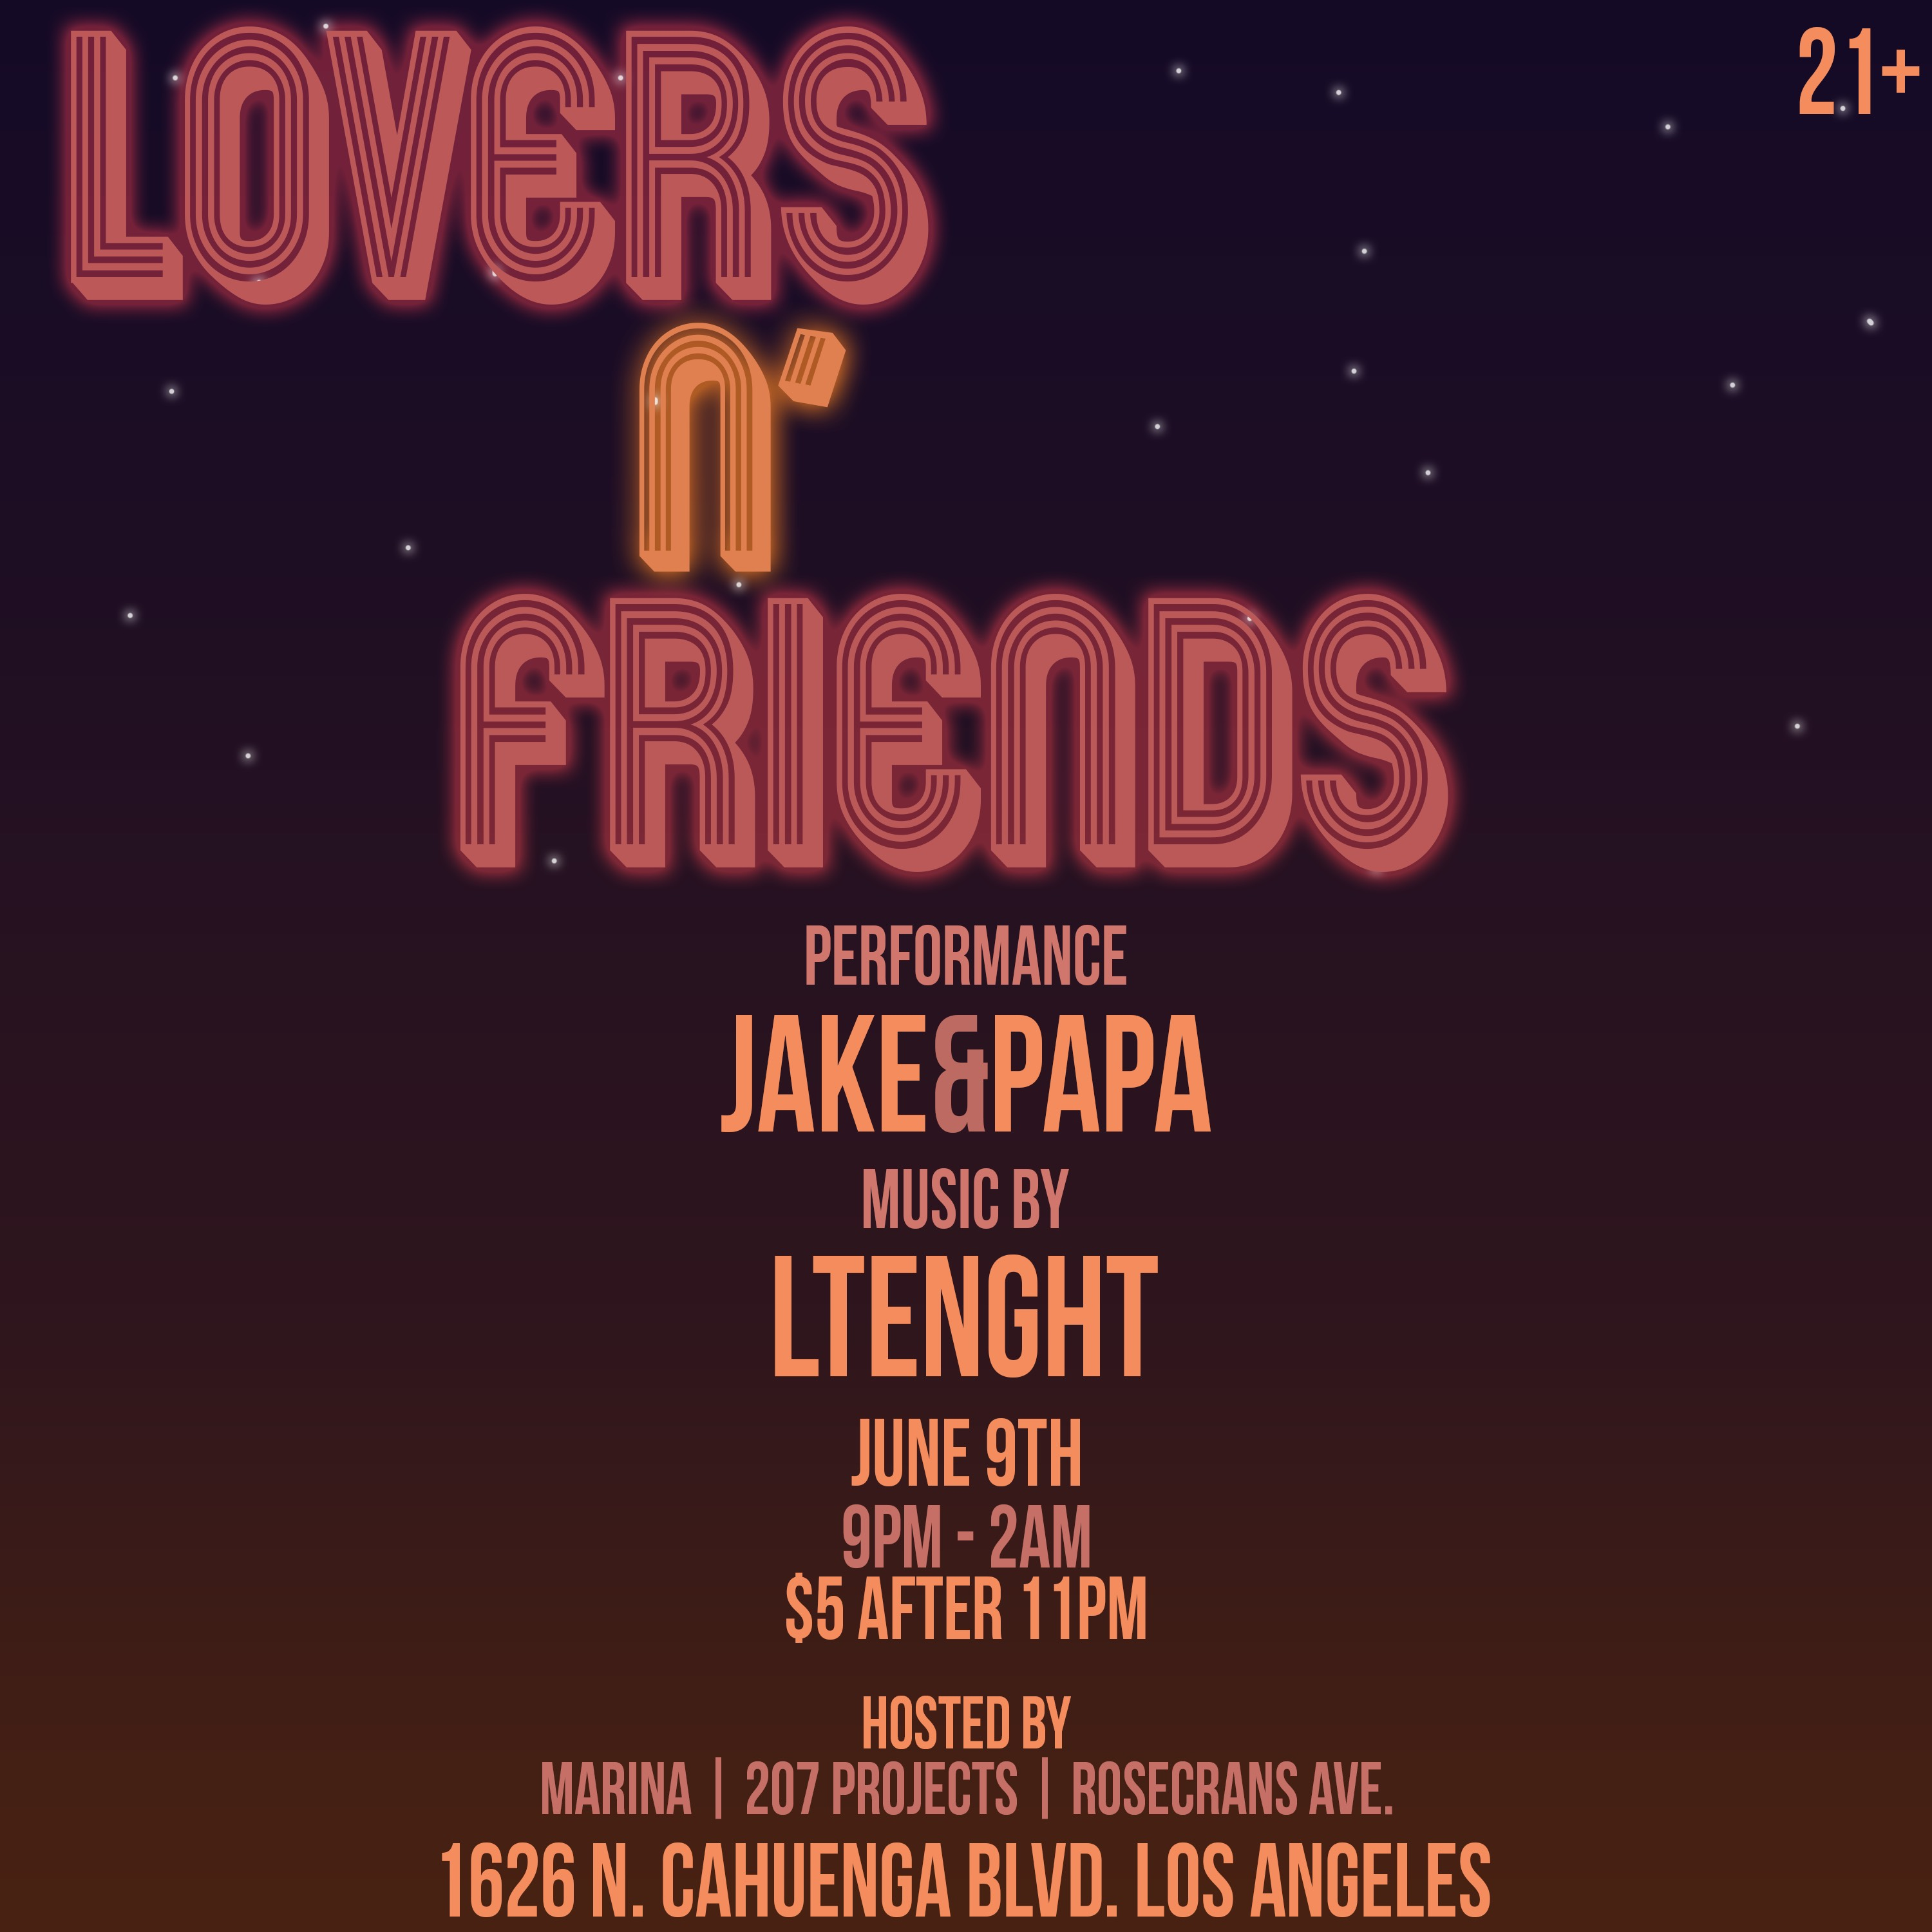 EVENT: Lovers 'N Friends W/ Live Performance By Jake & Papa + Sets from LTENGHT & DJ TREXXX